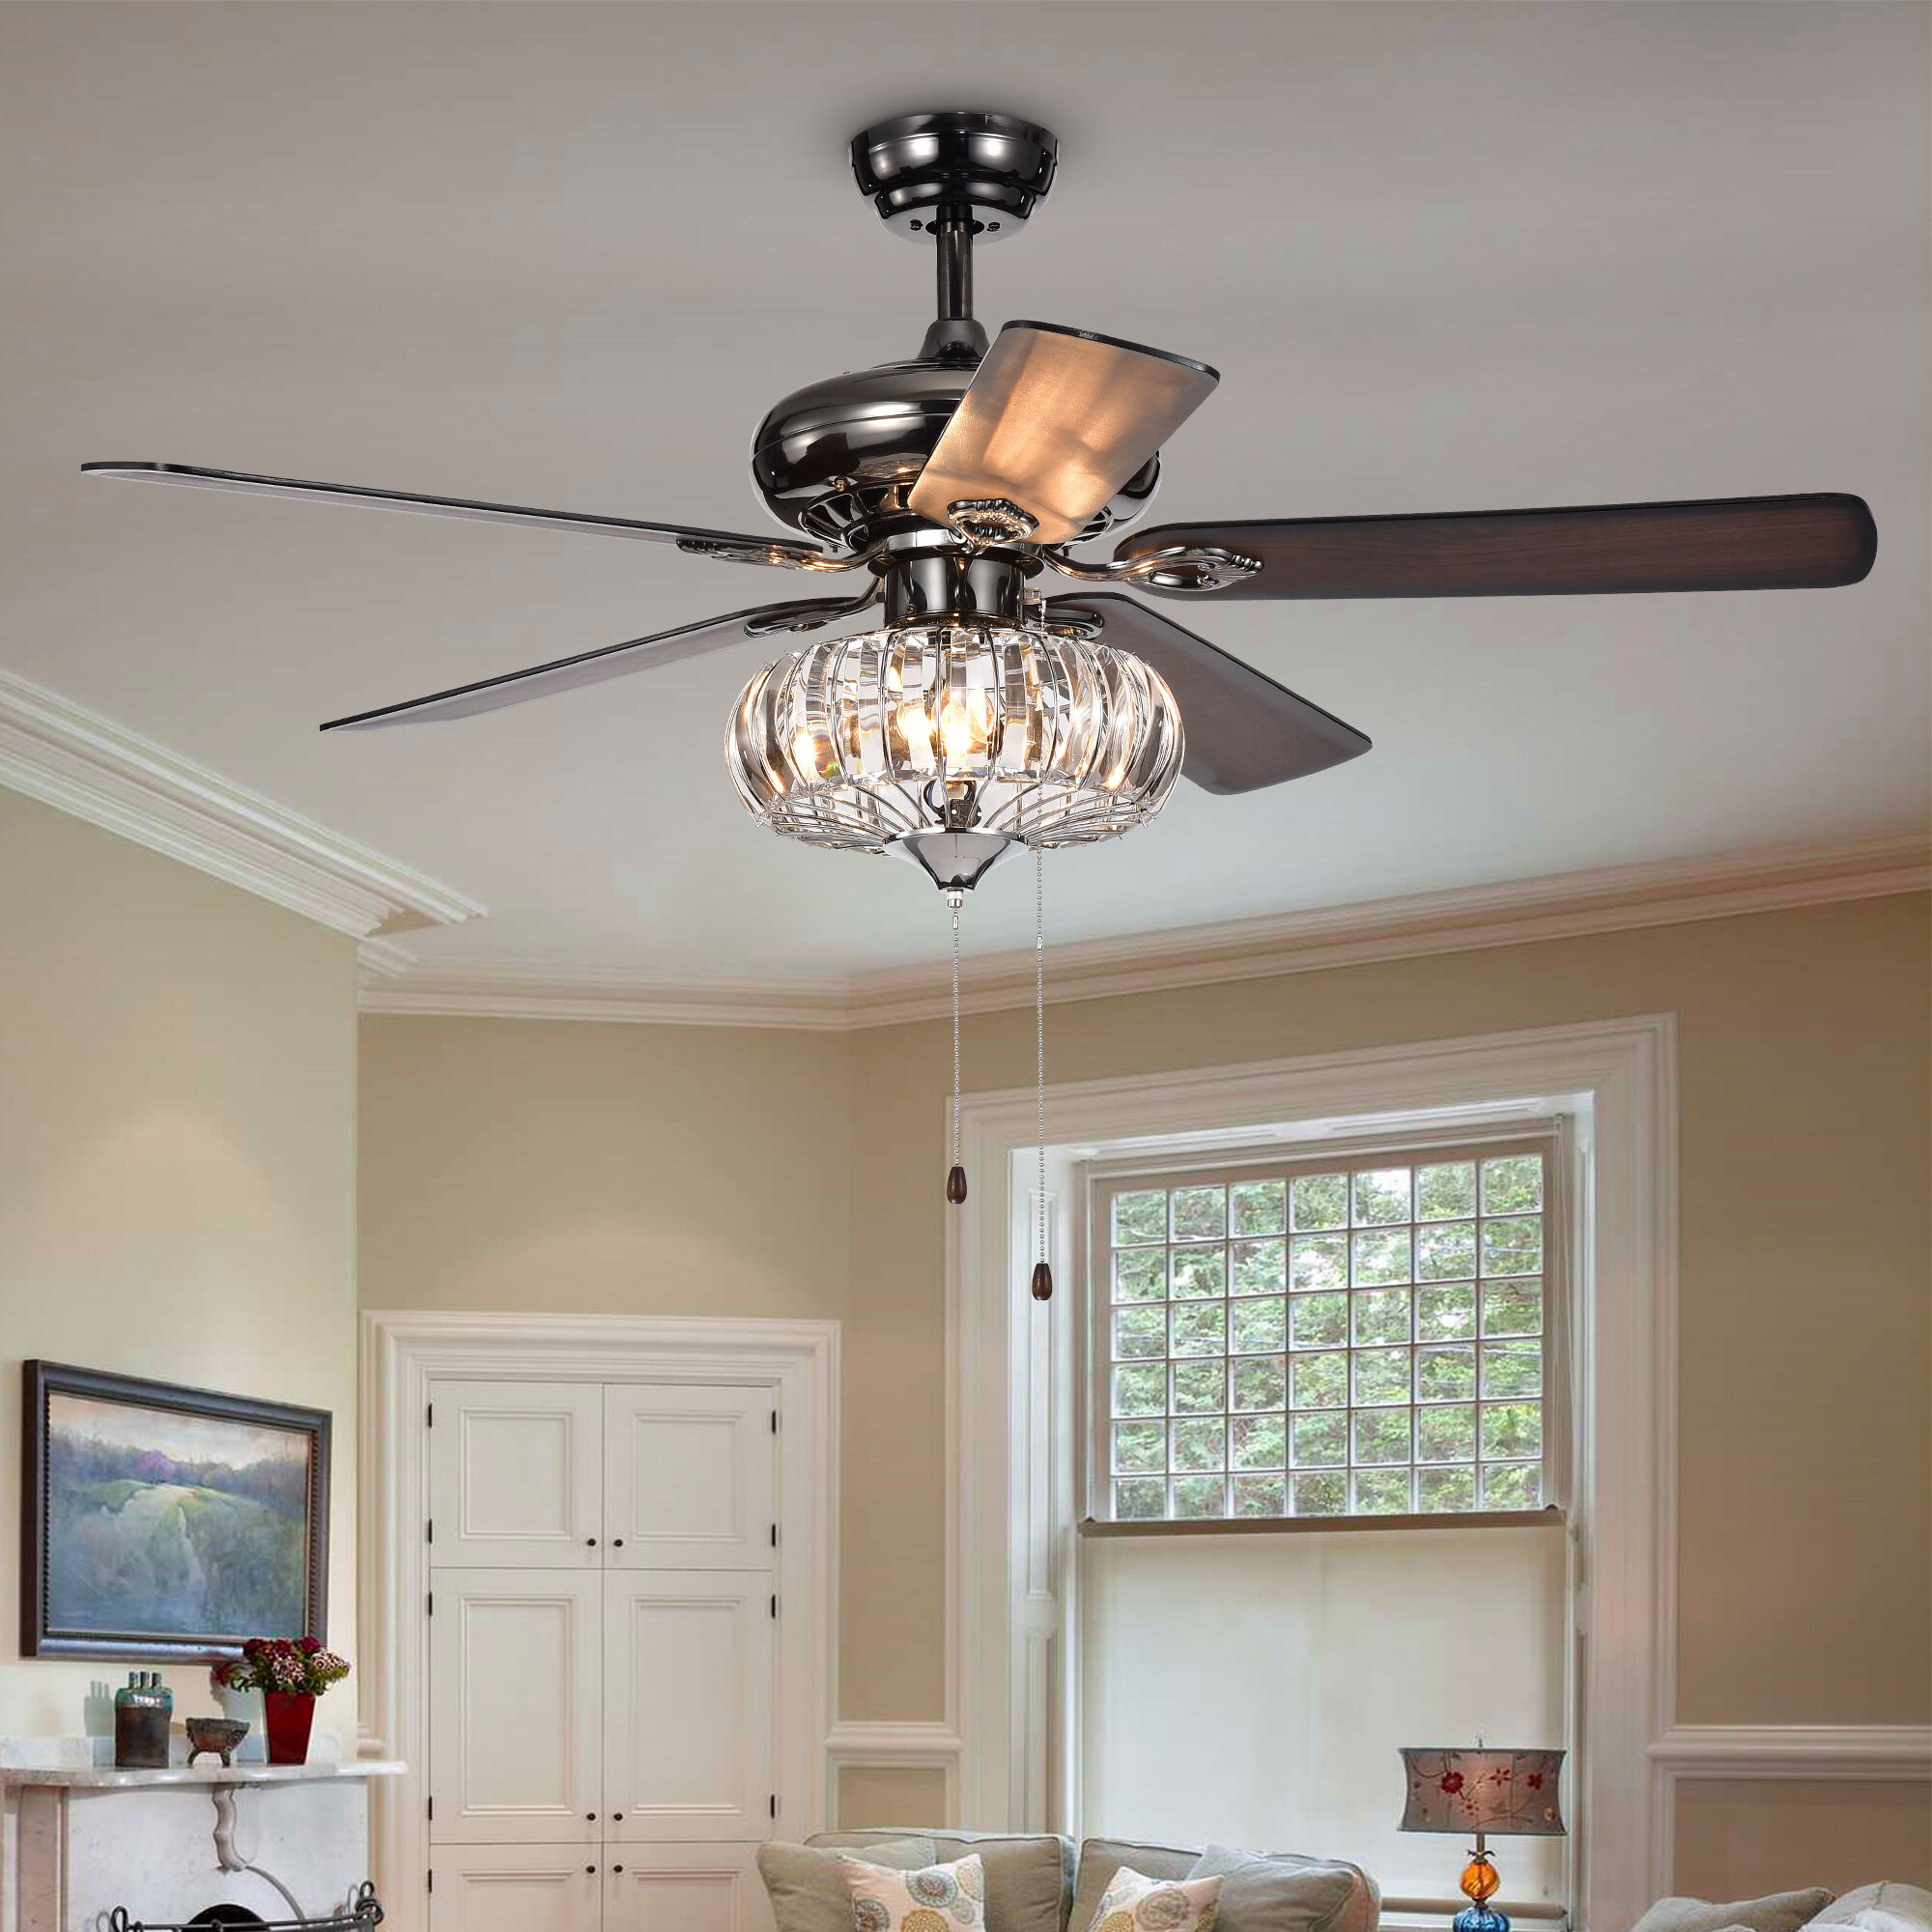 52 Laivai Crystal 5 Blade Ceiling Fan Light Kit Included